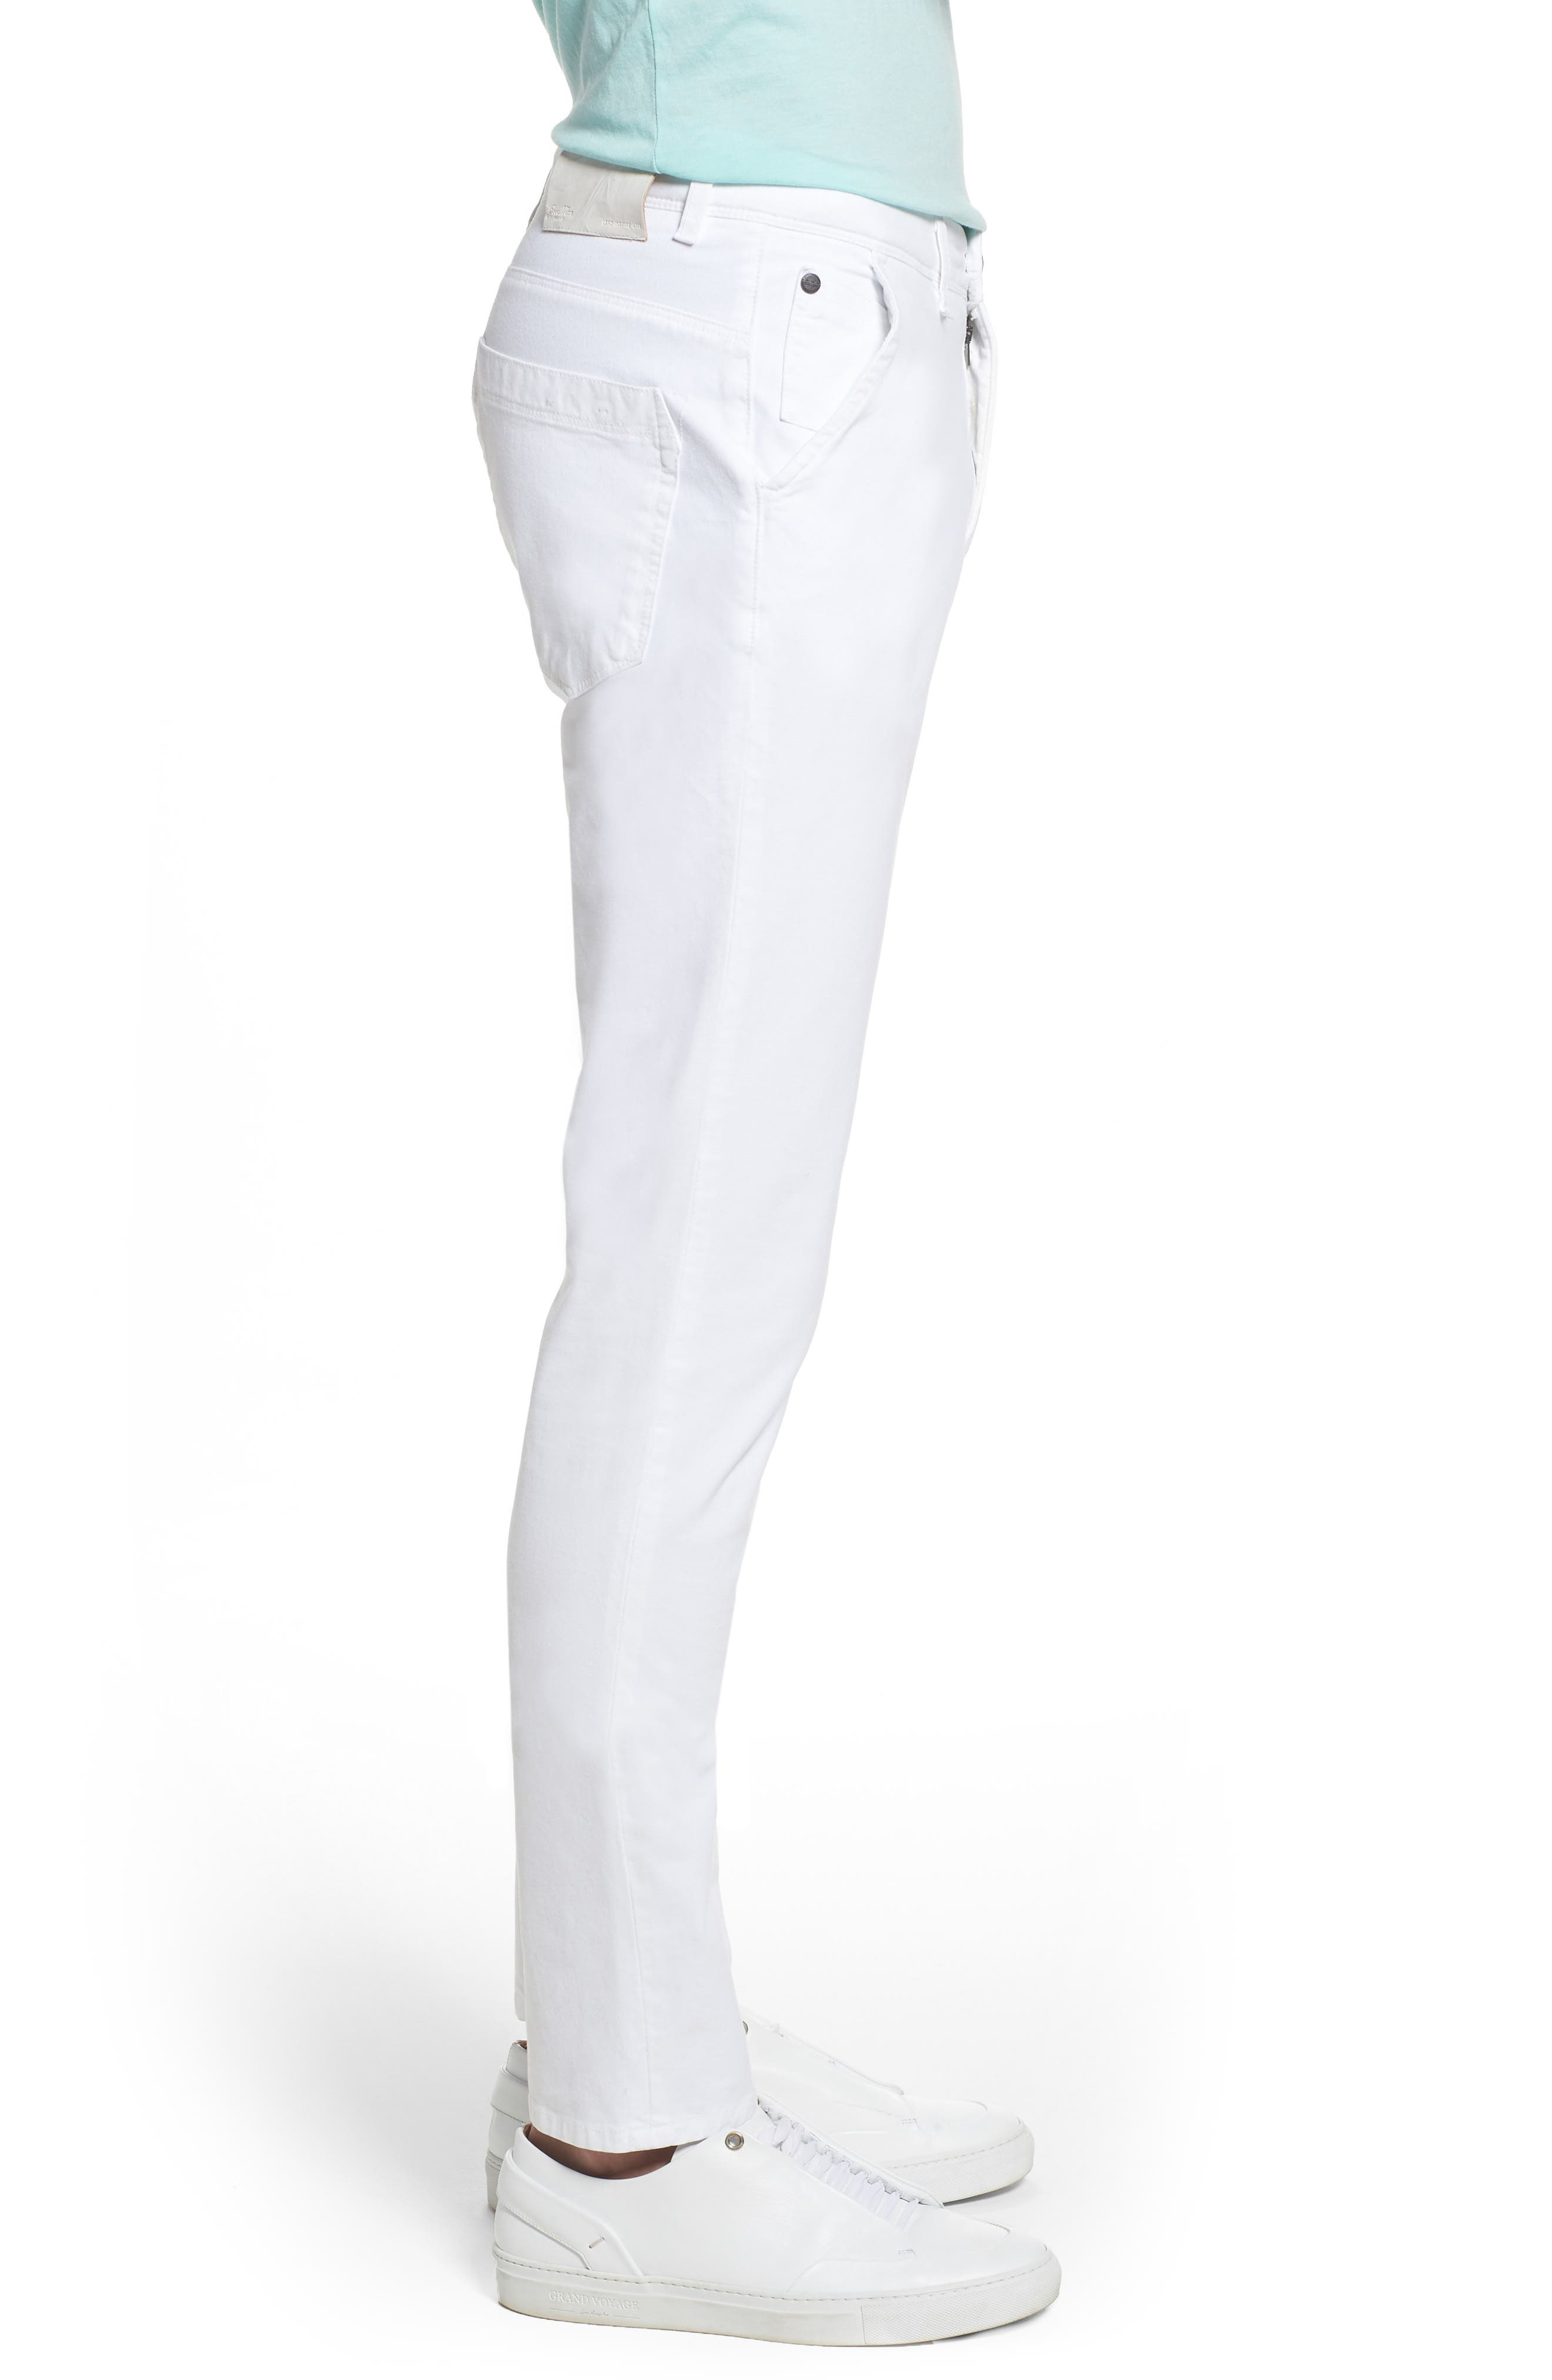 Hybrid Slim Fit Stretch Pants,                             Alternate thumbnail 3, color,                             White